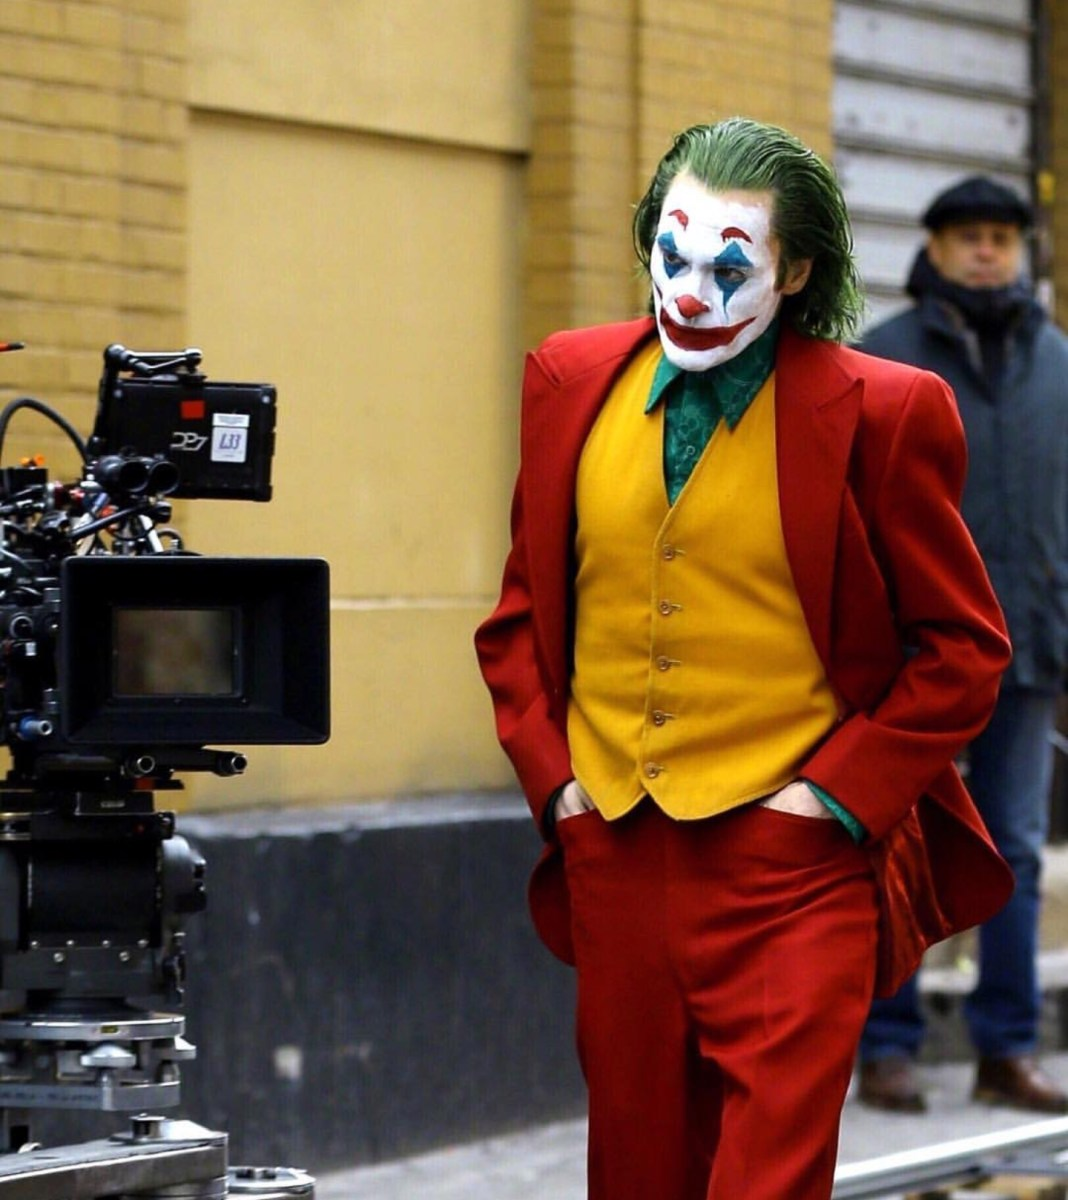 Joker Behind the Scenes Photos & Tech Specs